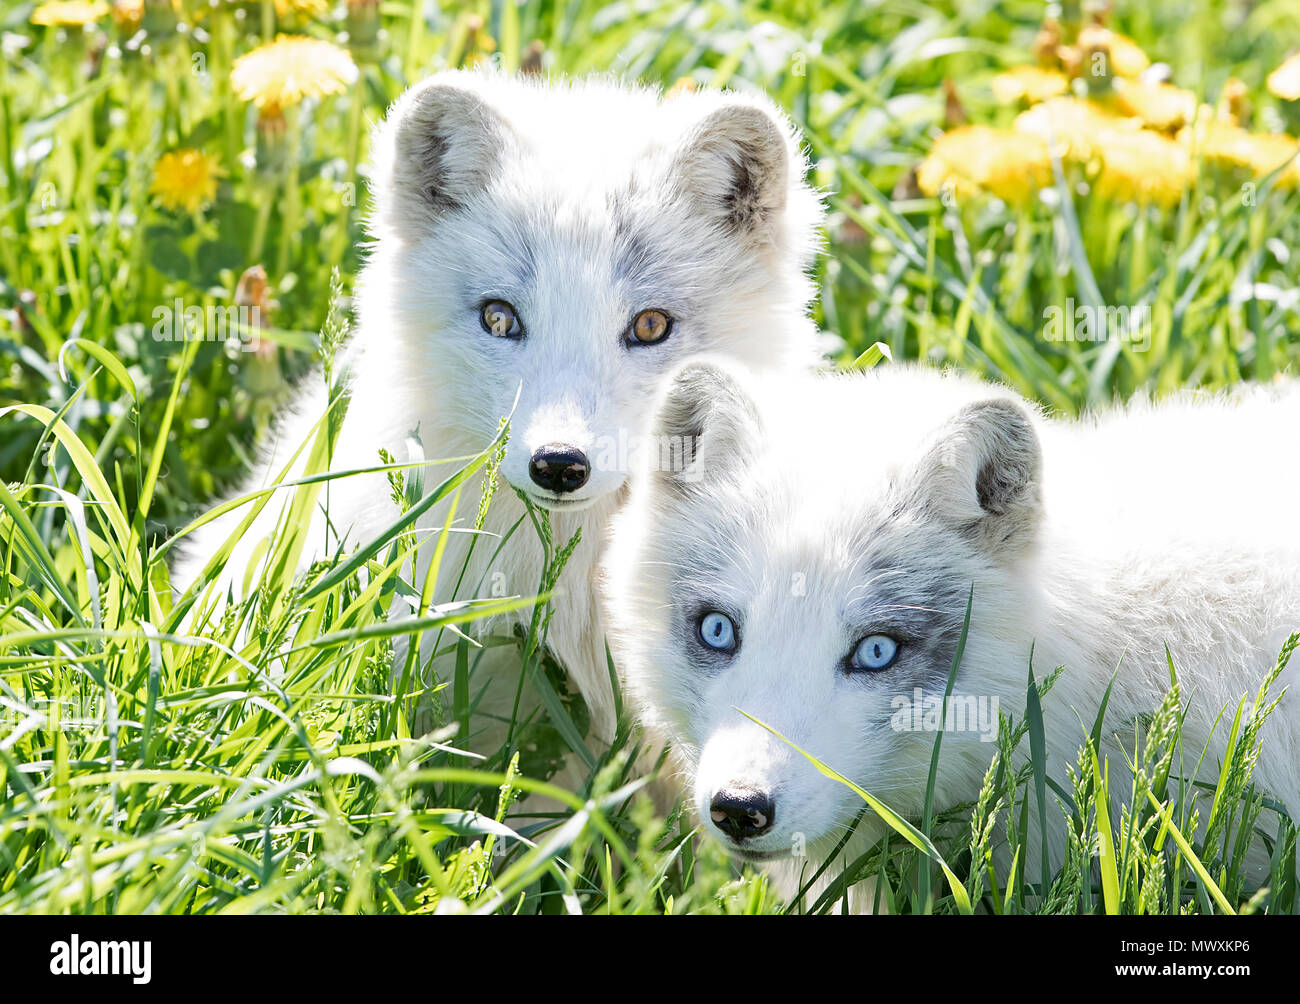 Arctic fox and kit (Vulpes lagopus) in the grass in Canada - Stock Image